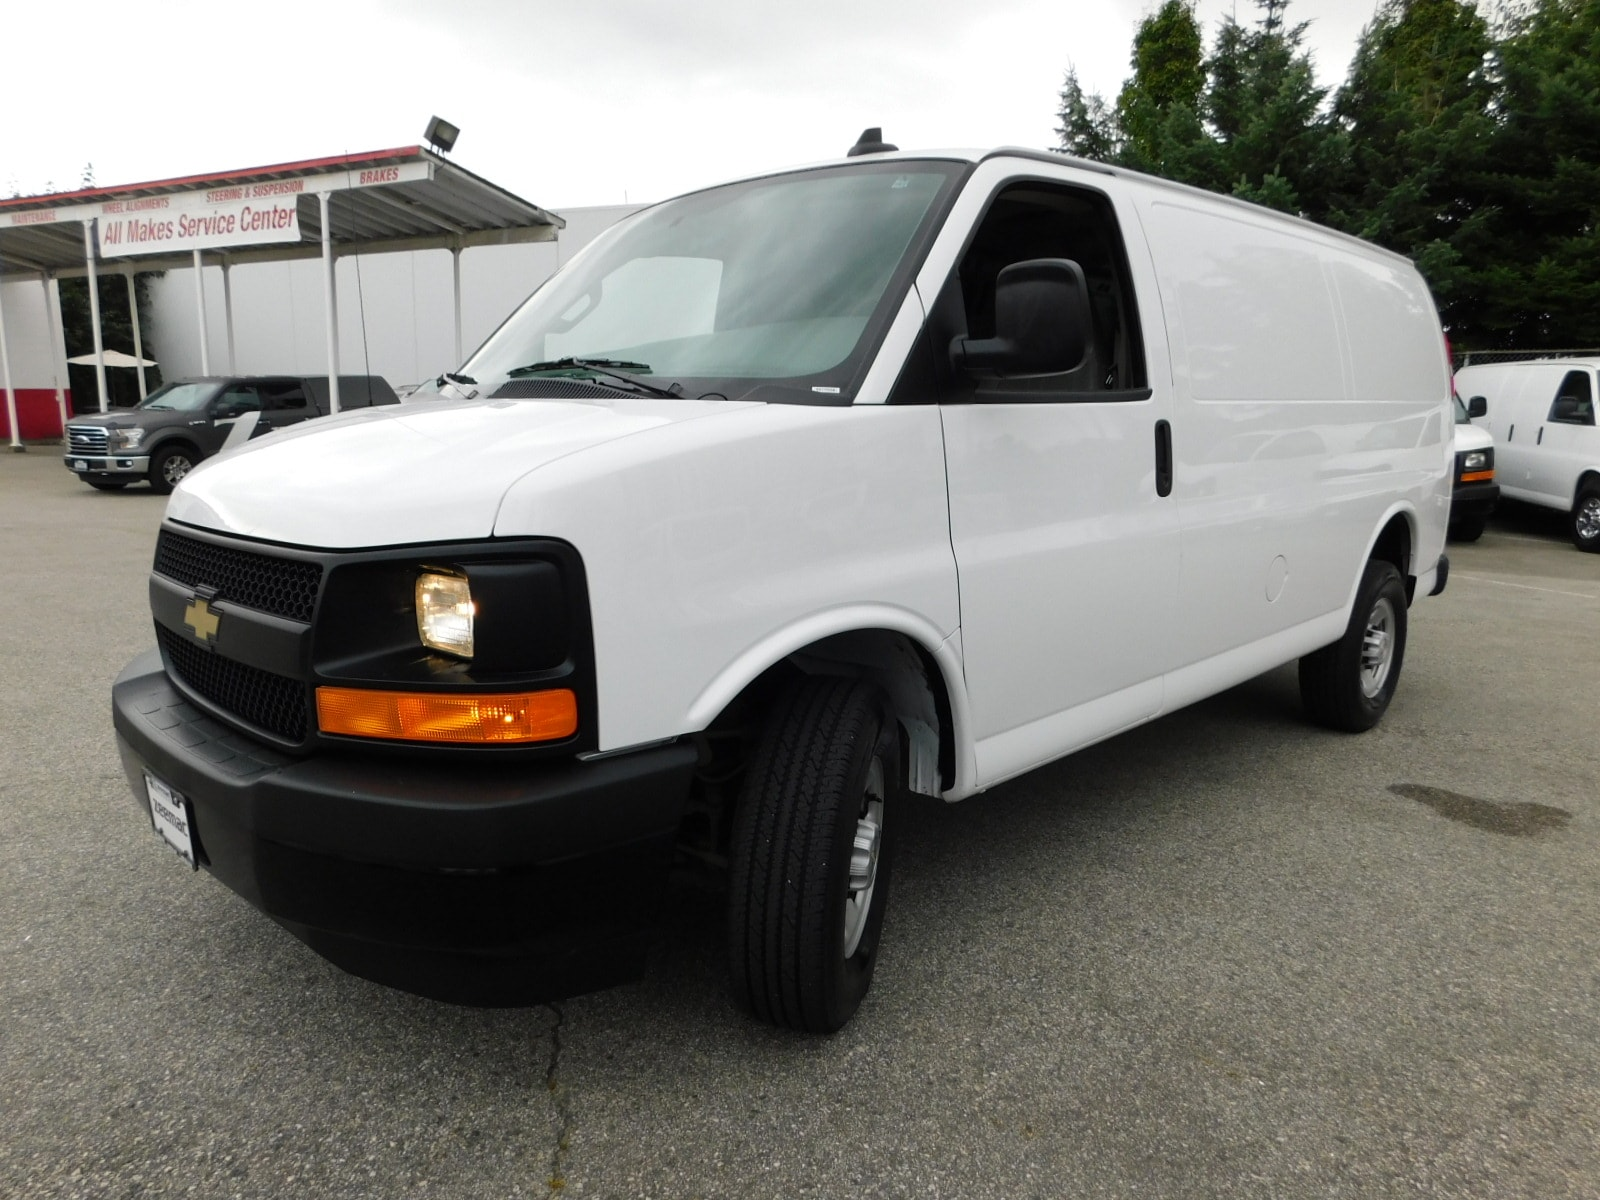 2017 CHEVROLET Express 2500 135' WB w/ Power Group